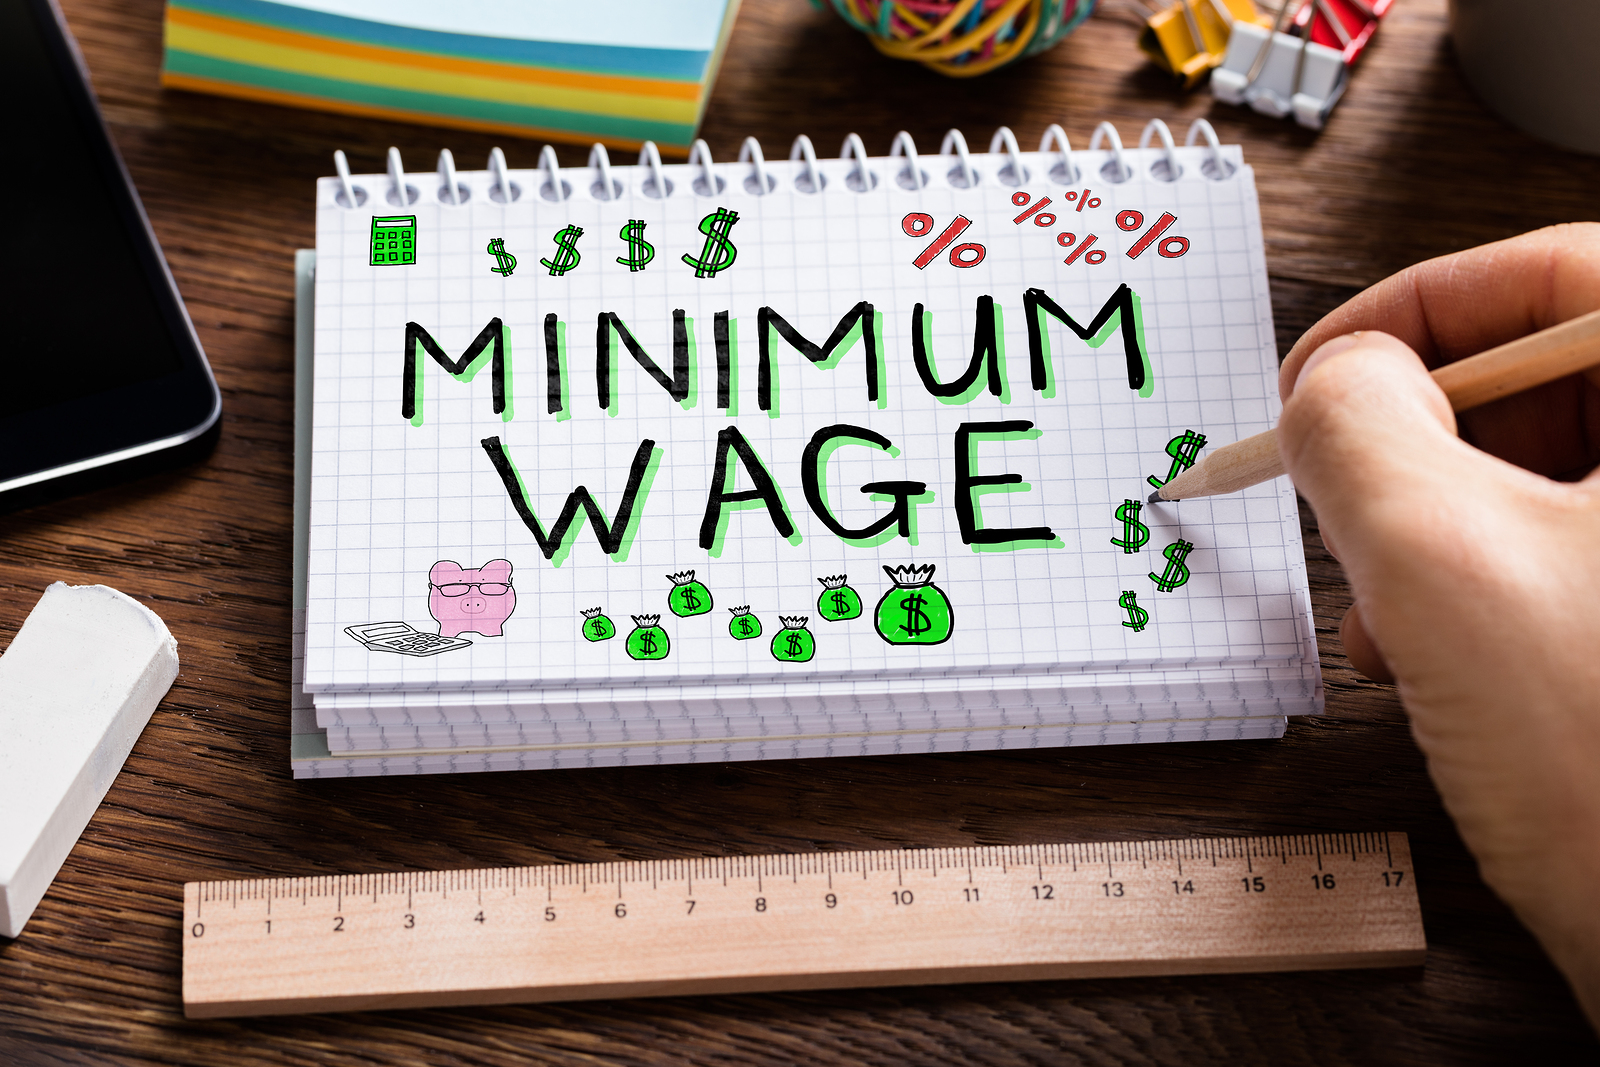 FOR A FAIR MINIMUM SALARY – BE FAIRER AND BE BETTER